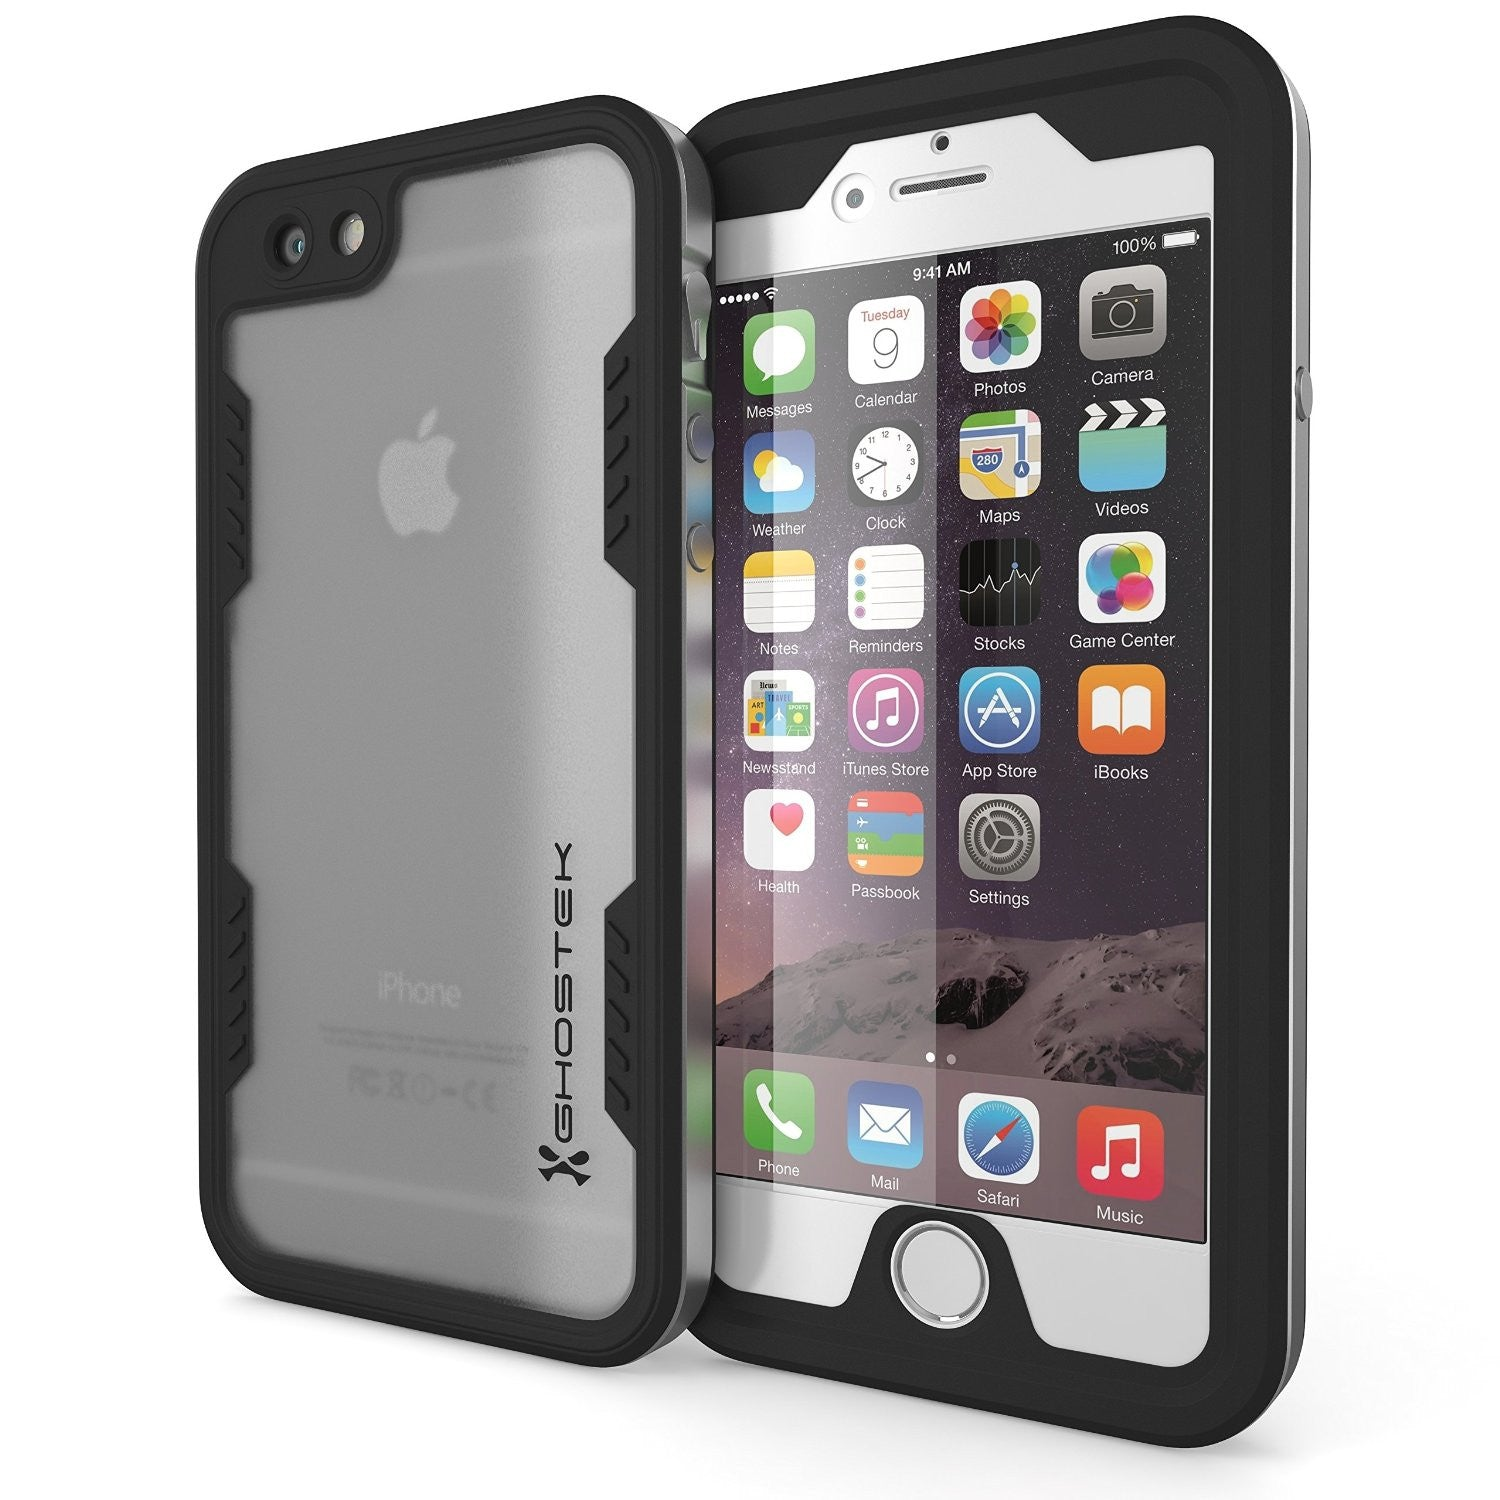 iPhone 6/6S Waterproof Case, Ghostek Atomic 2.0 SILVER W/ Attached Screen Protector | Slim Fit